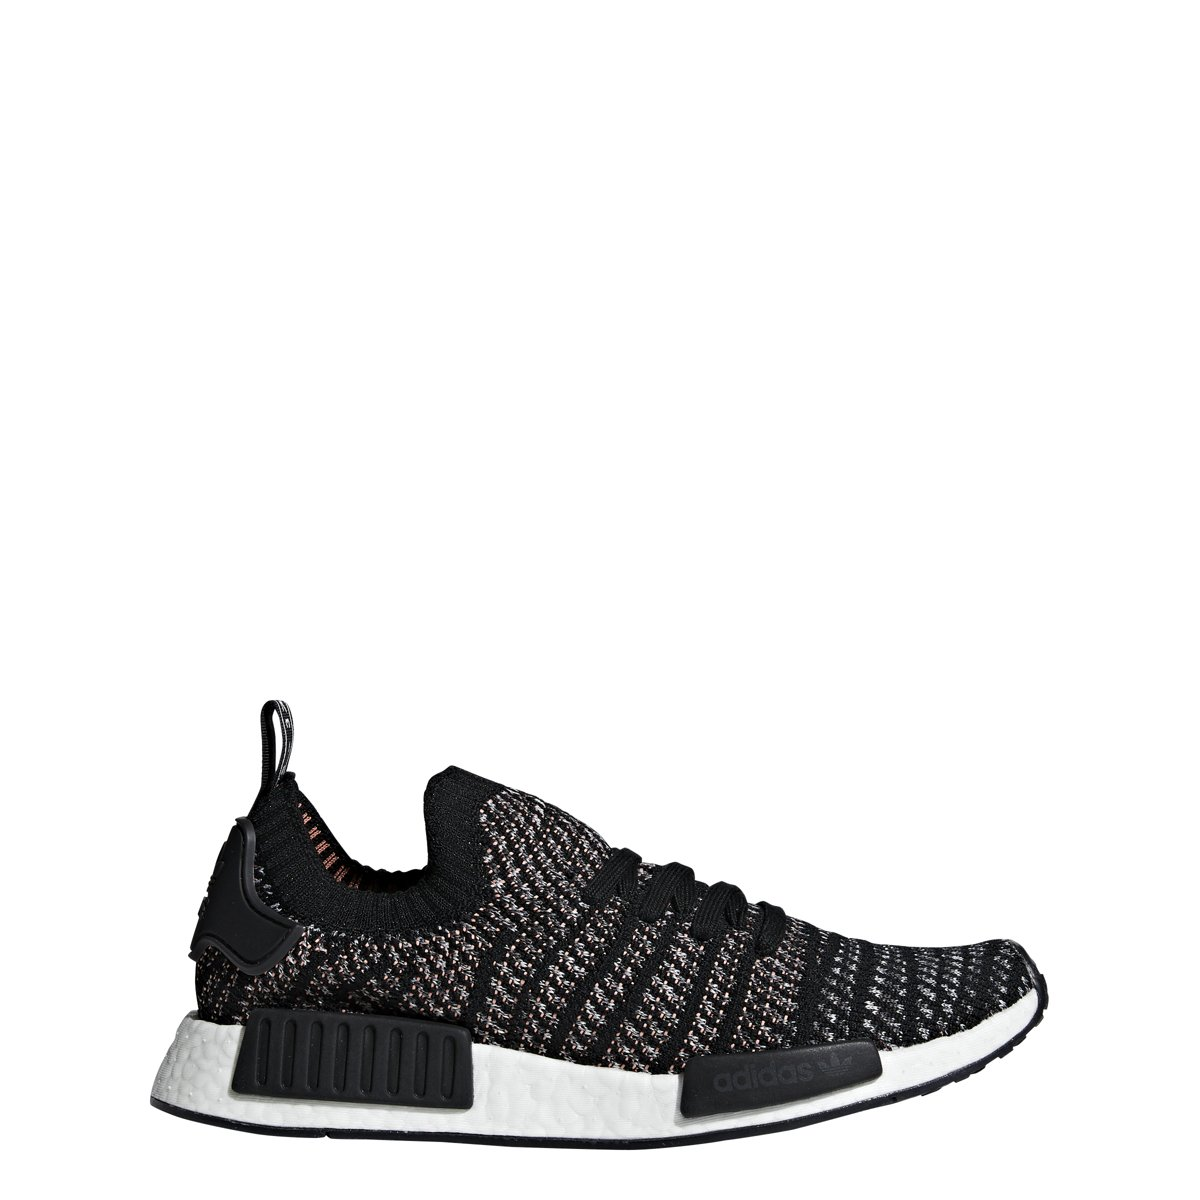 80ea3c6a9e205 Adidas Nmd Primeknit Size 12 Top Deals   Lowest Price